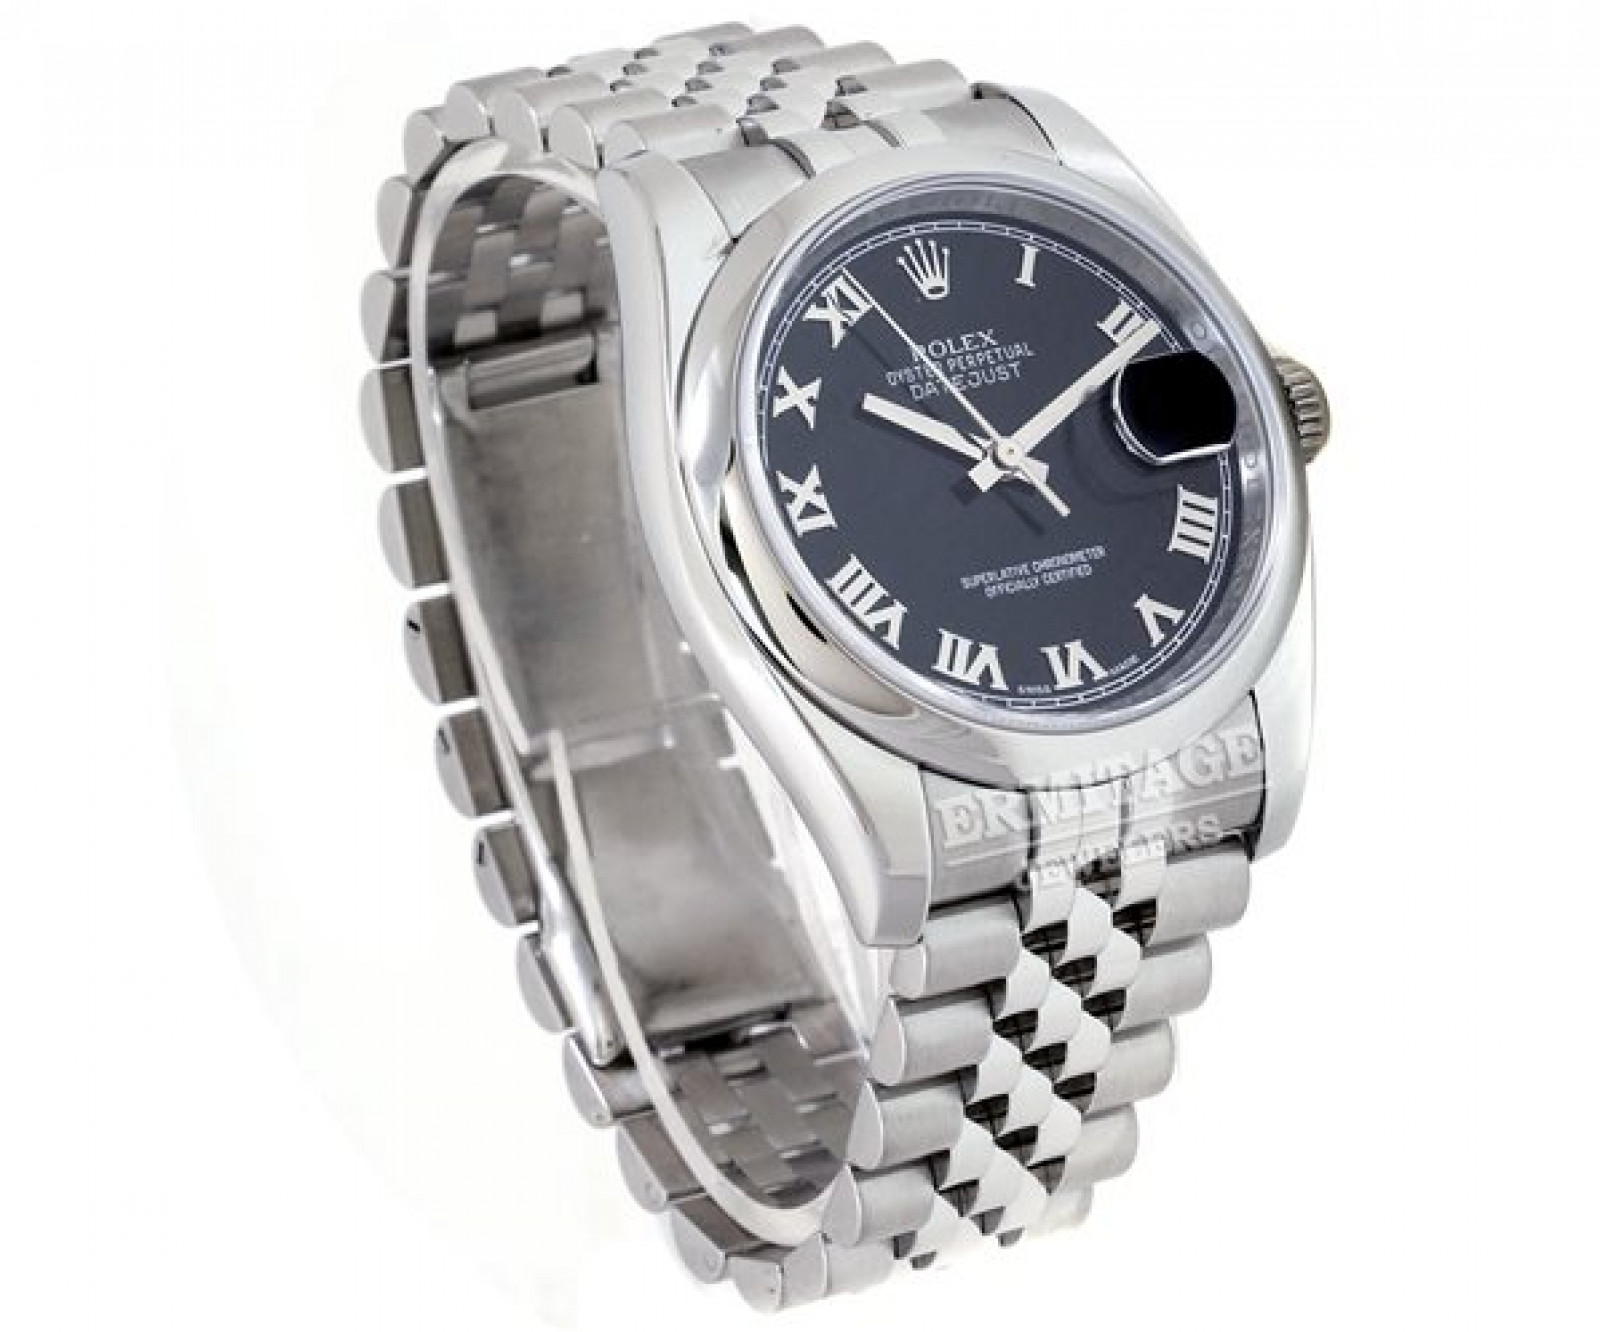 Men's Rolex Datejust 116200 with Jubilee Bracelet